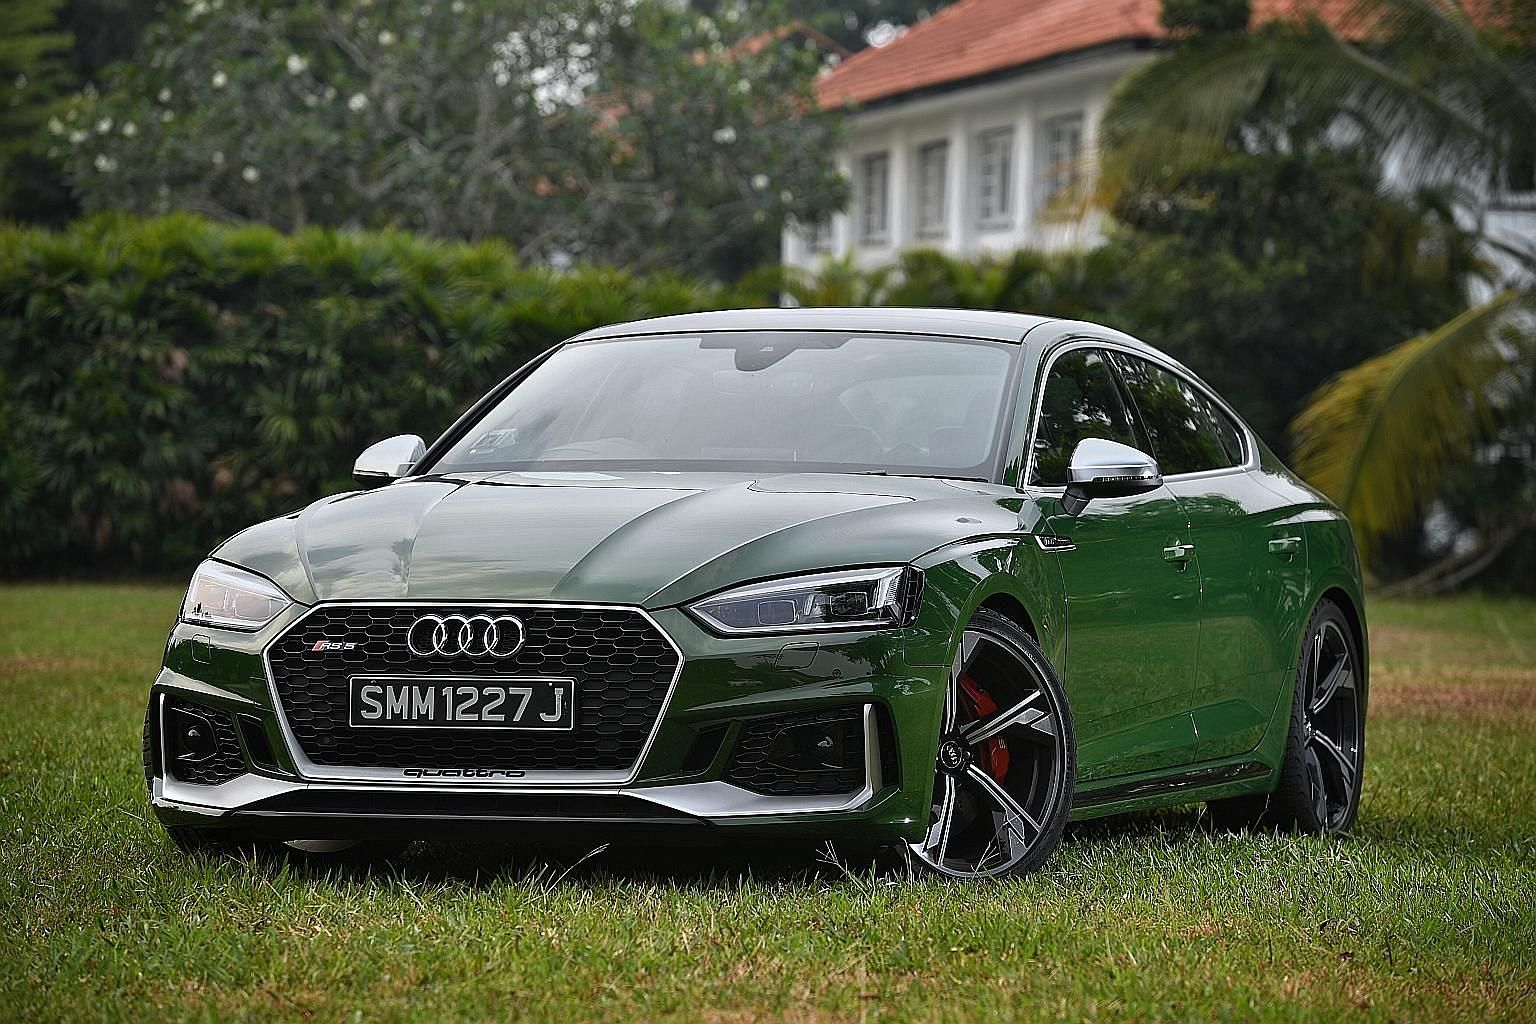 The Audi RS5 Sportback is a lovely drive, with precise and effortless steering and a creamy, quick and well-spaced gearbox.